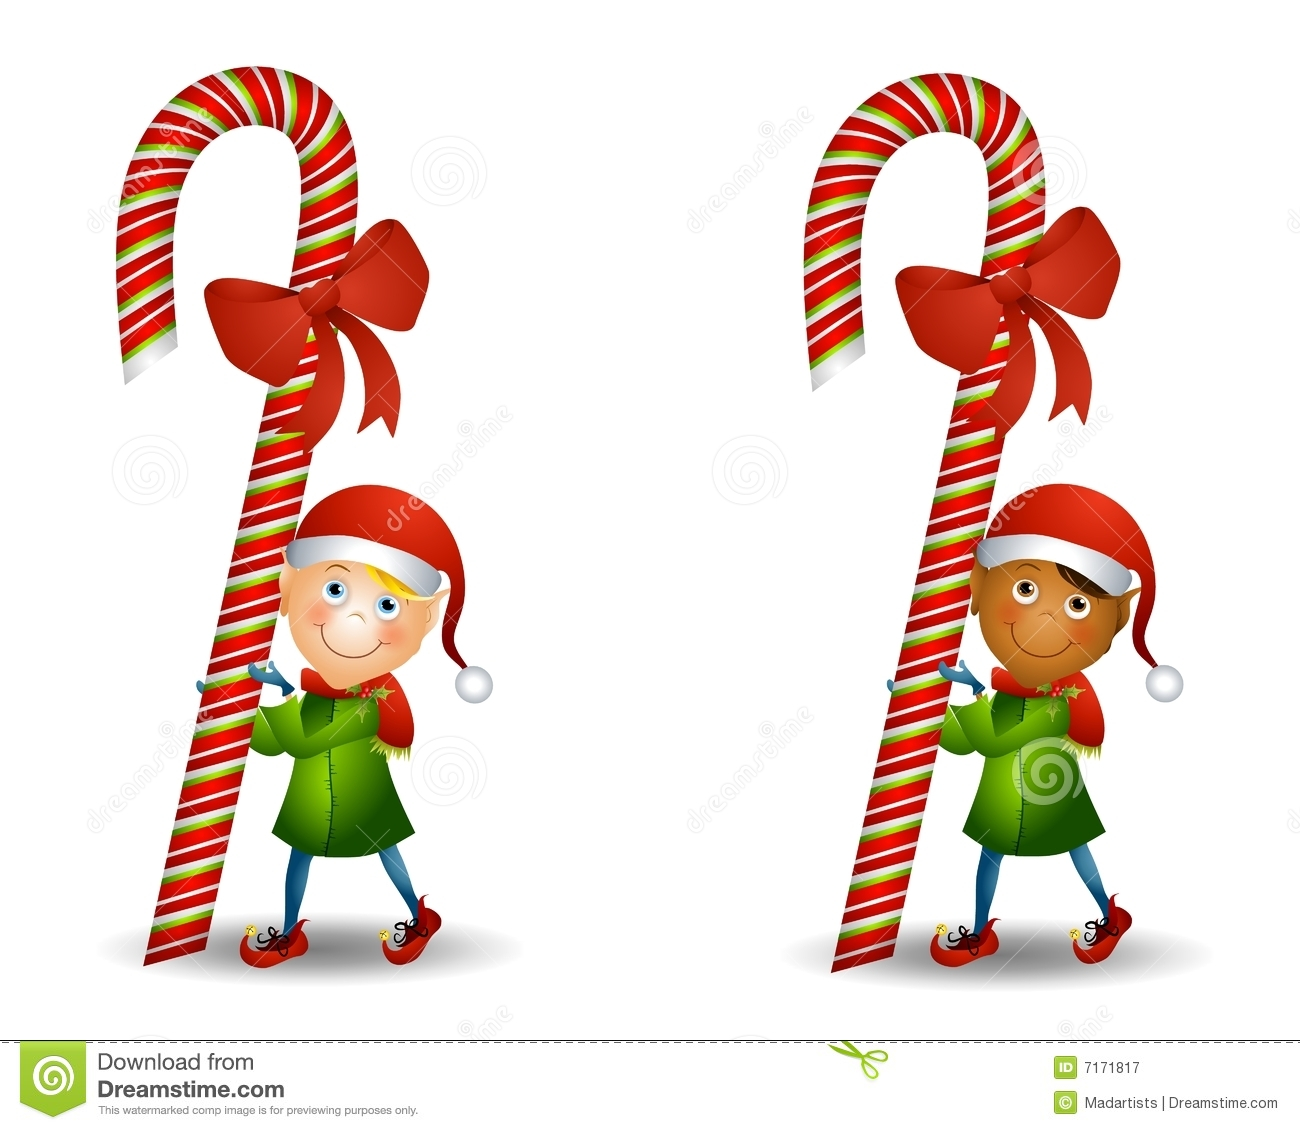 An Illustration Featuring Your Choice Of Elf Carrying A Candy Cane